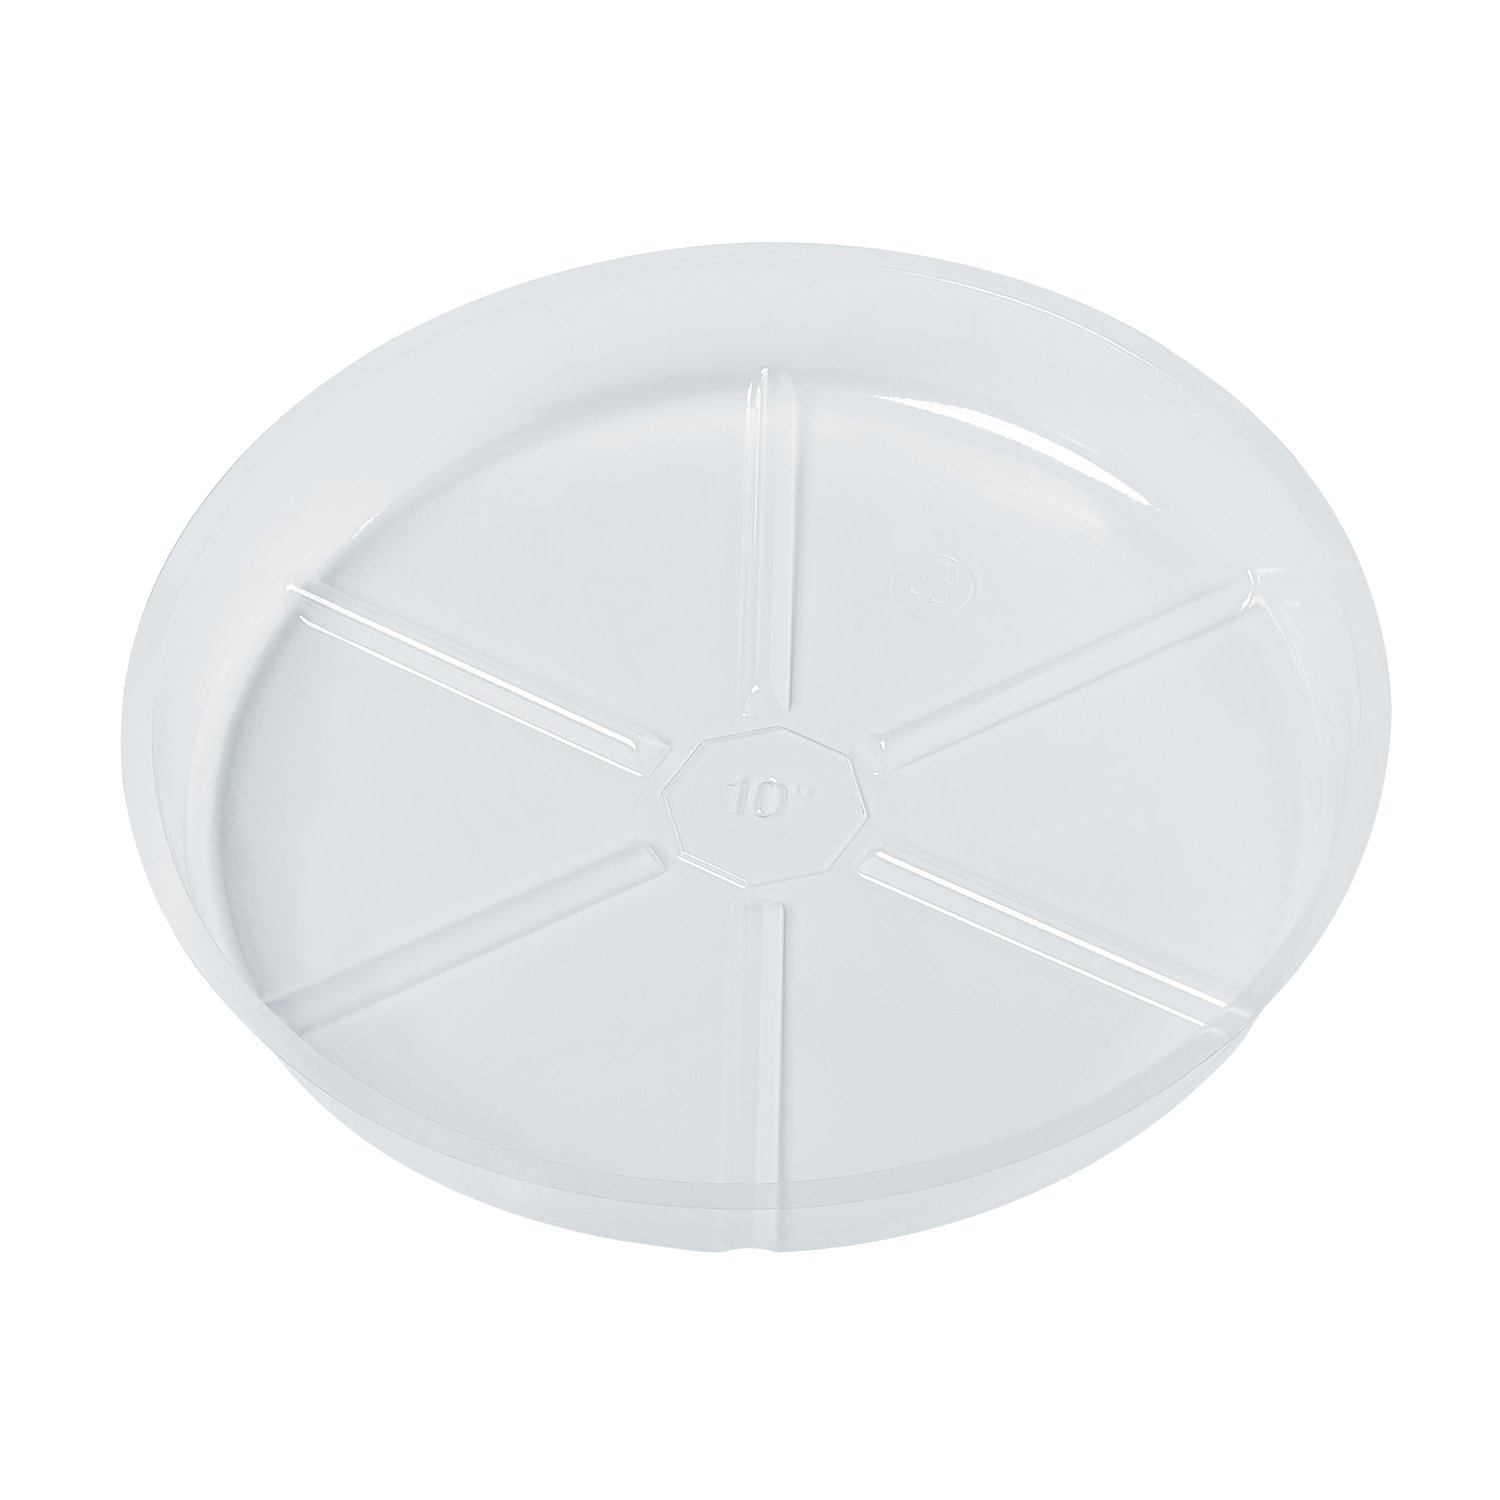 10 Pack of 10 inch, Clear Vinyl Plant Saucers, Surface Protection for Household Plants (OBVS10'') by Oakbay